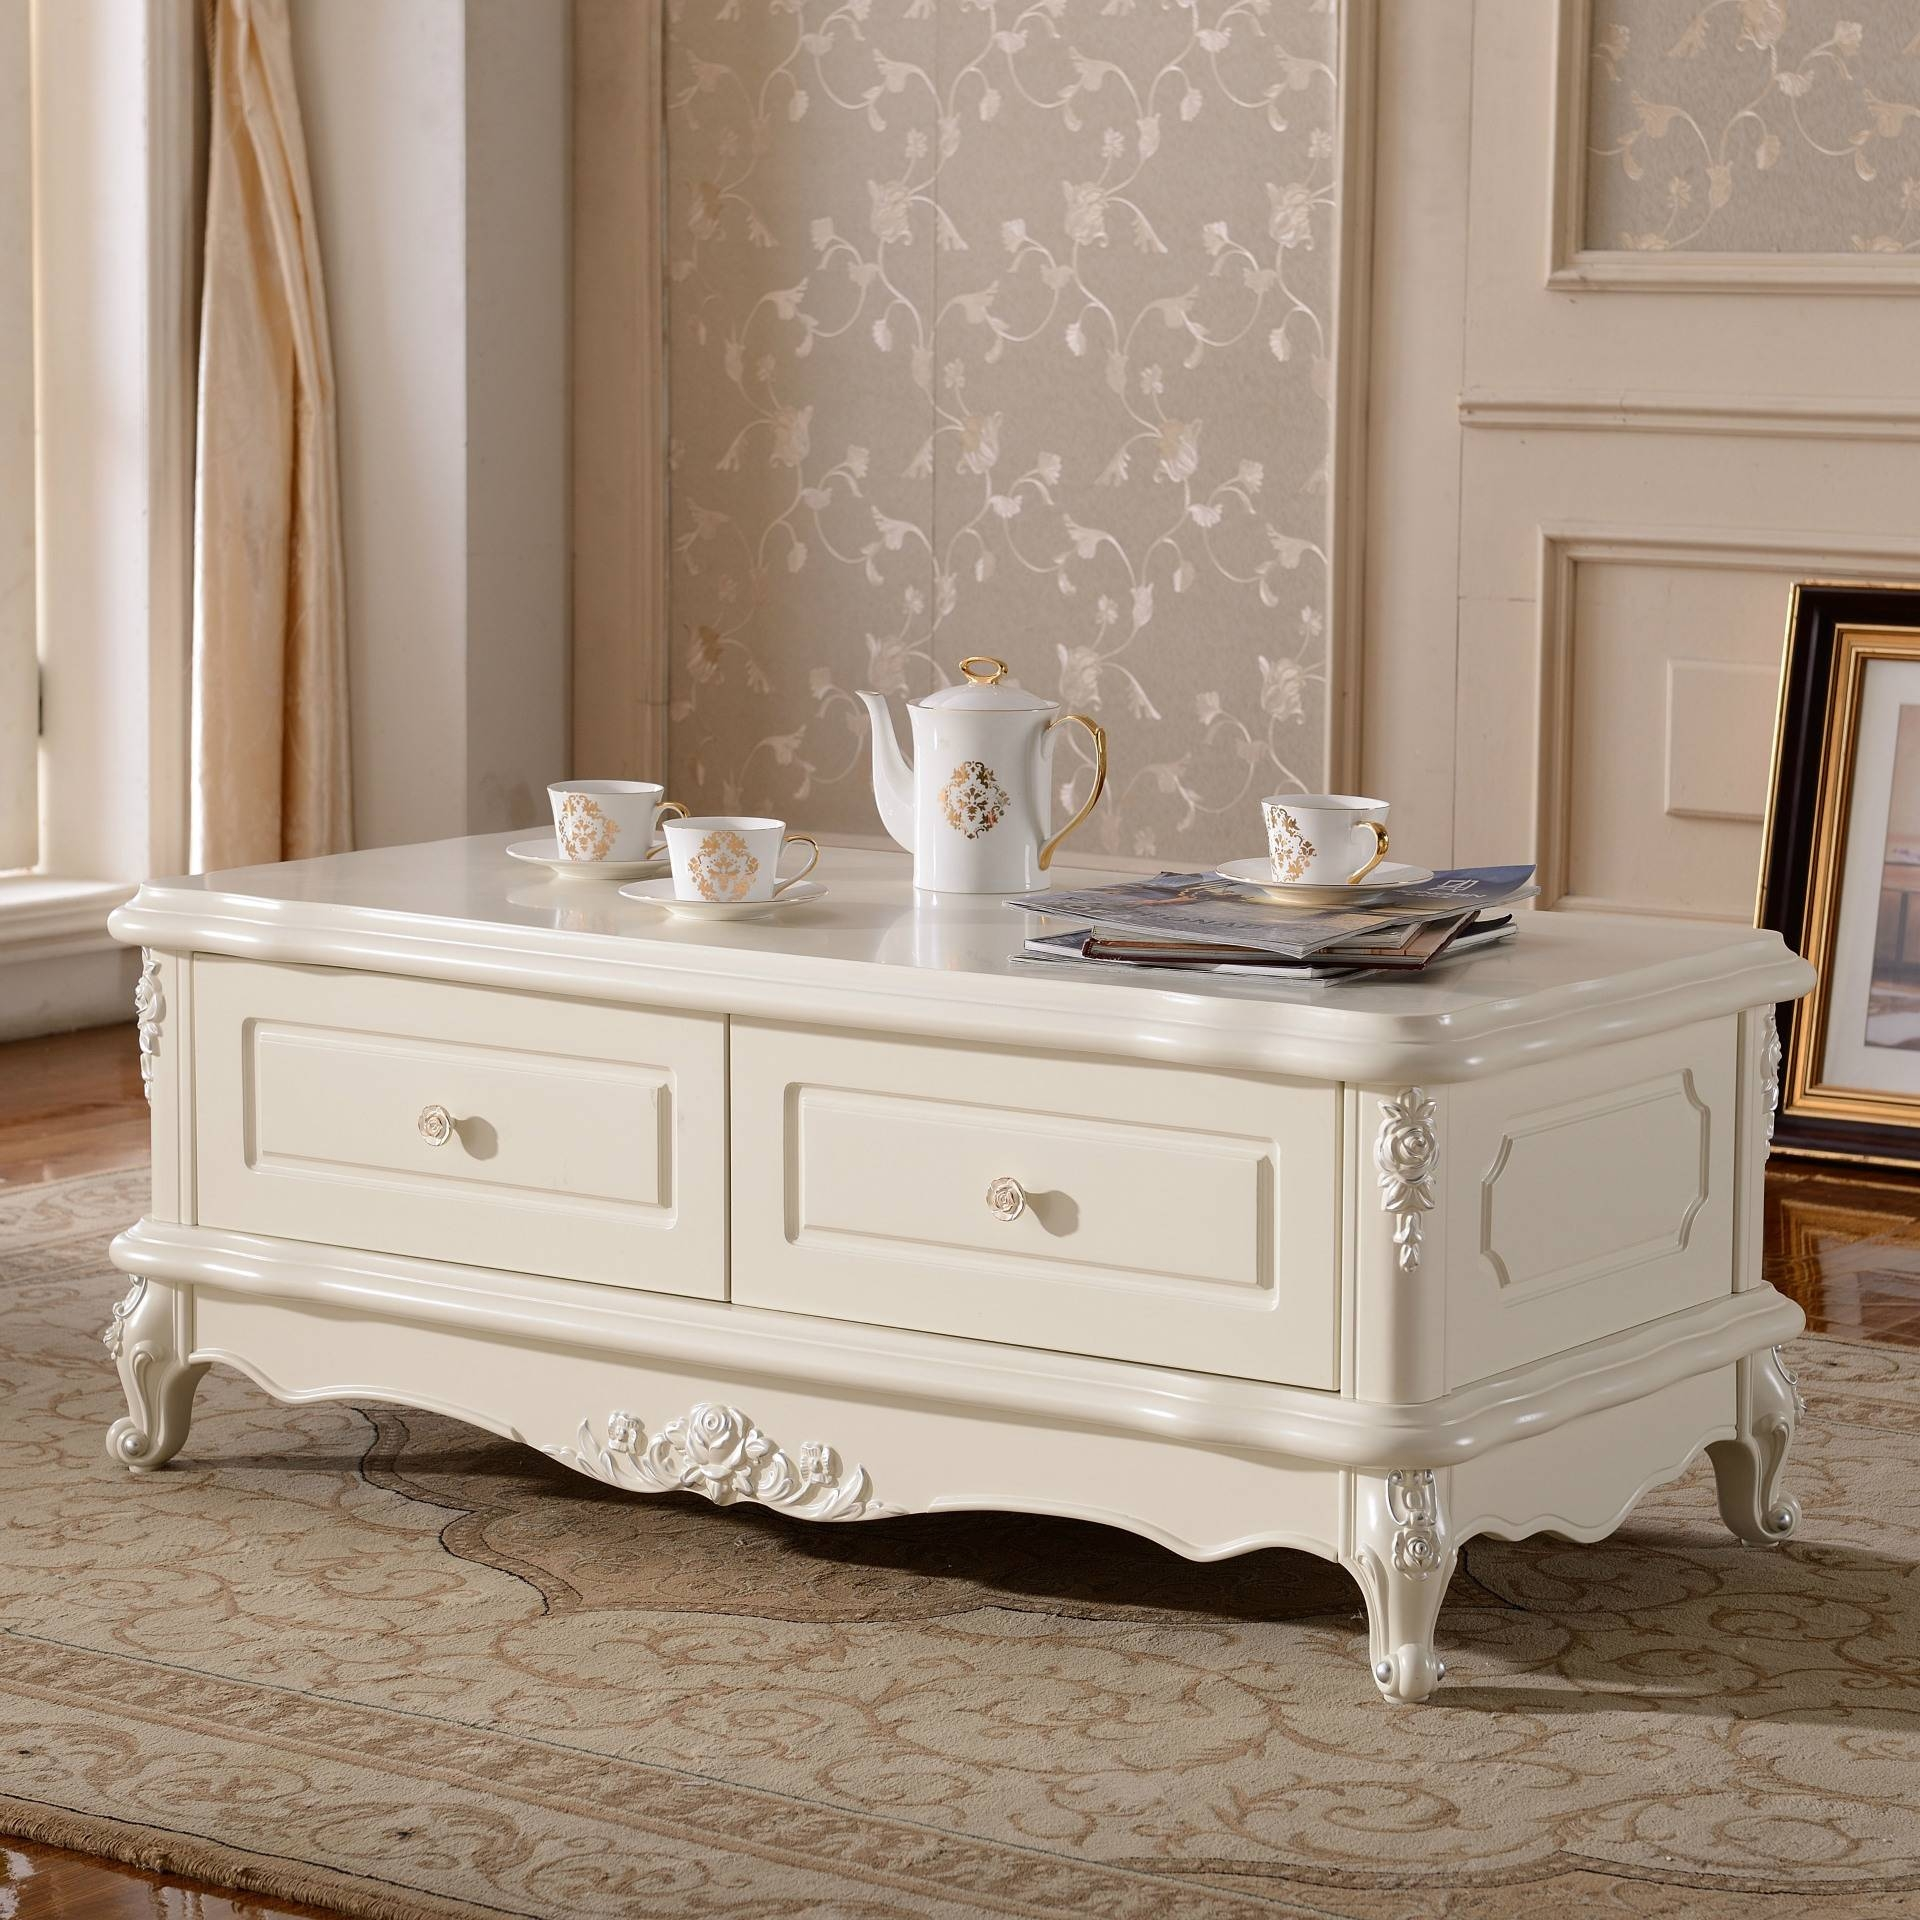 Hot Coffee Continental French Romantic French Carved Storage throughout French White Coffee Tables (Image 24 of 30)